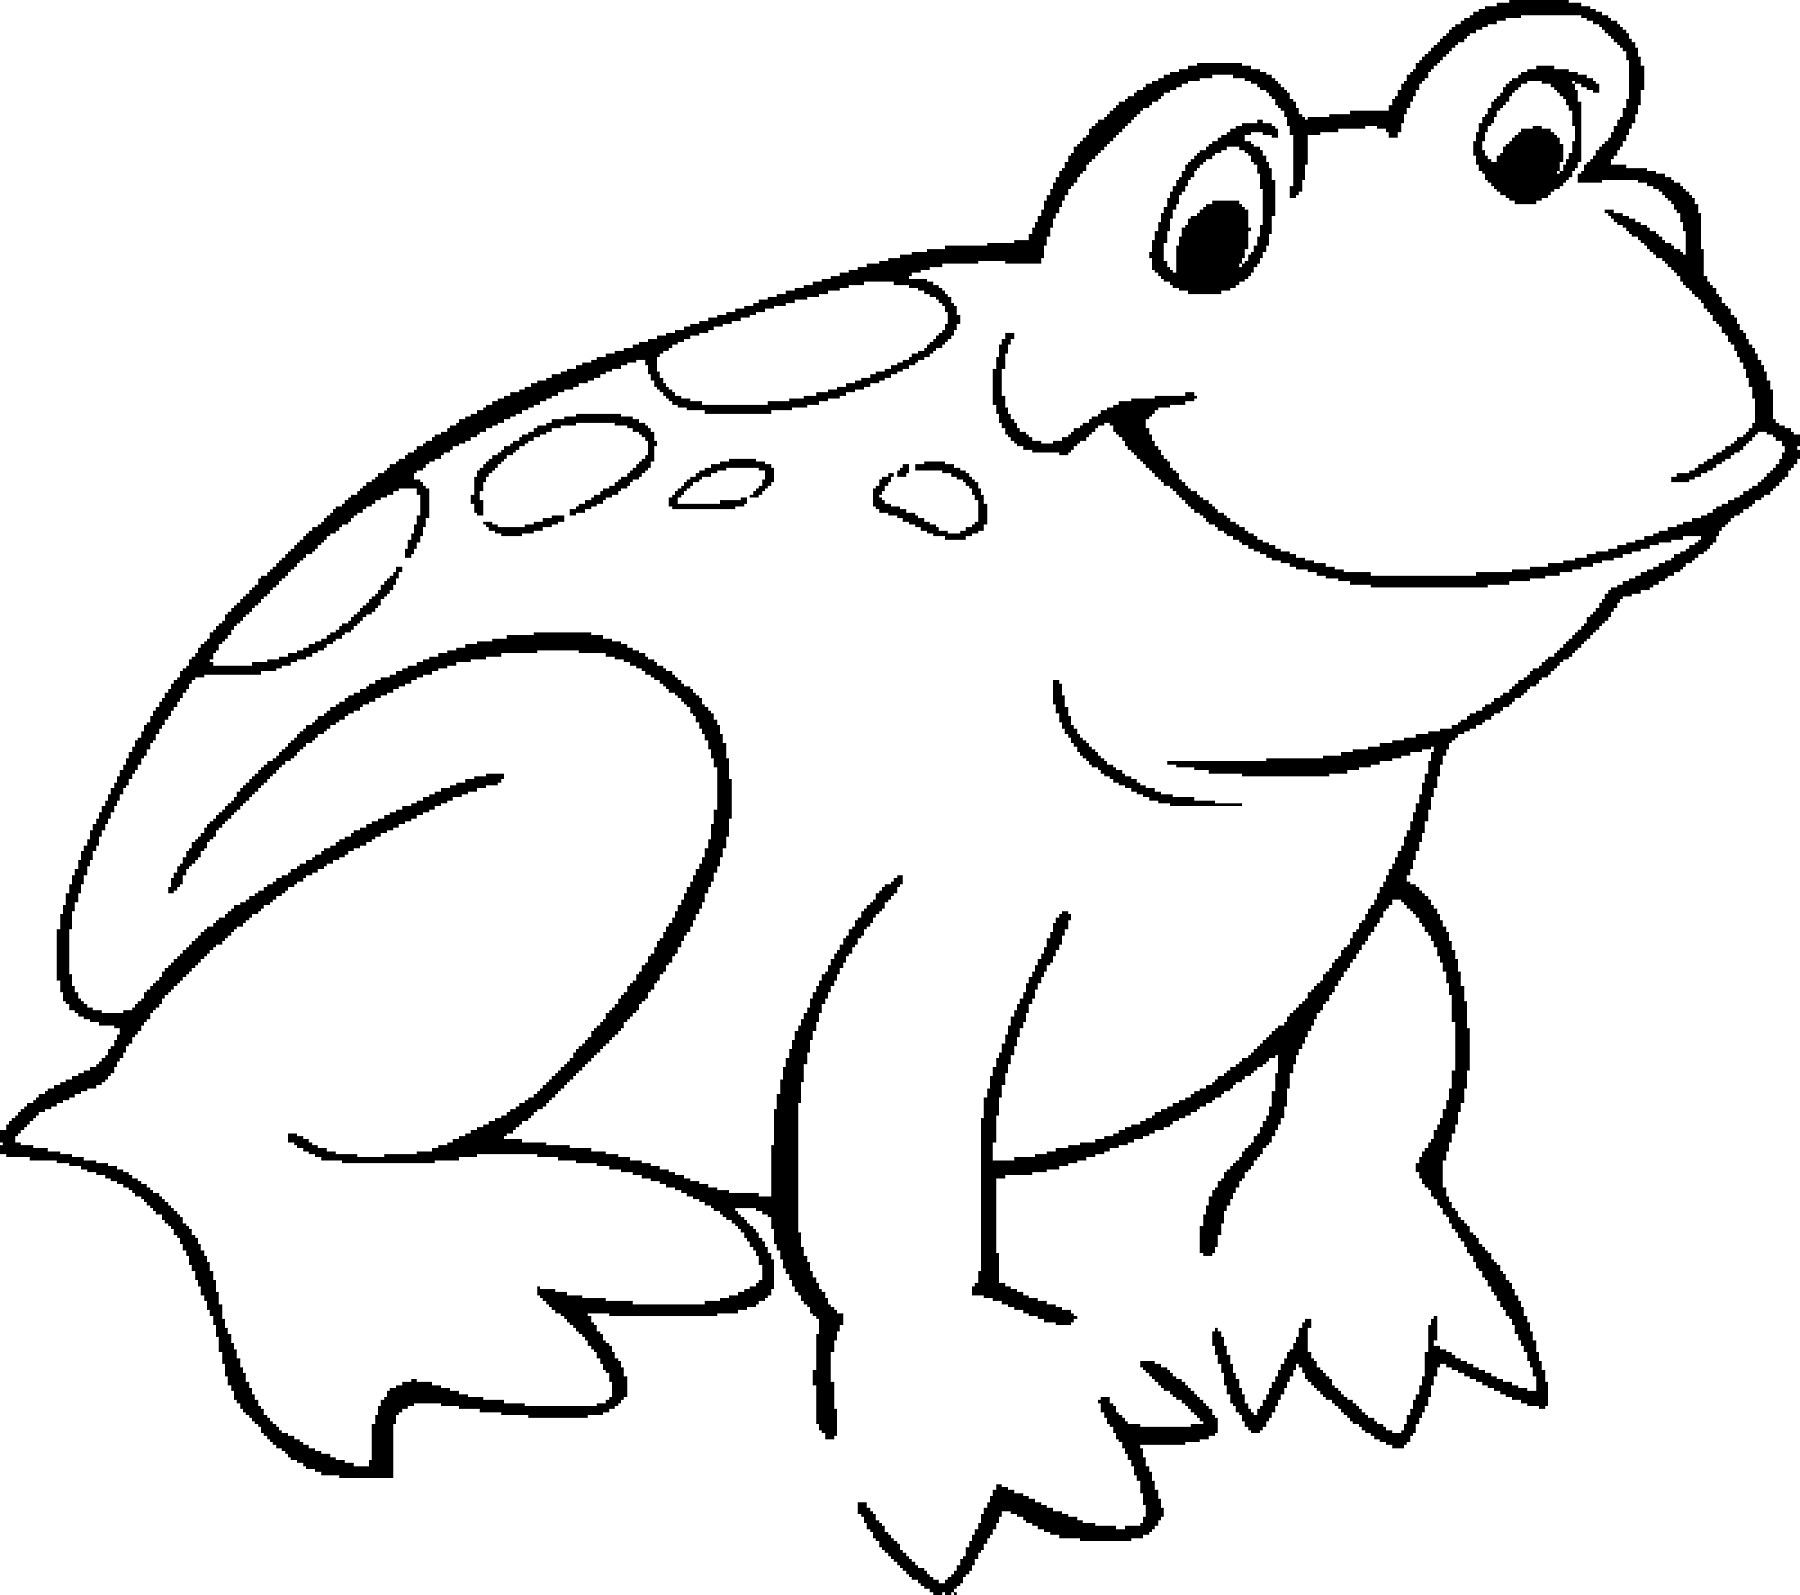 1800x1595 Frog Coloring Pages To Print Awesome Easy Frog Drawing For Kids